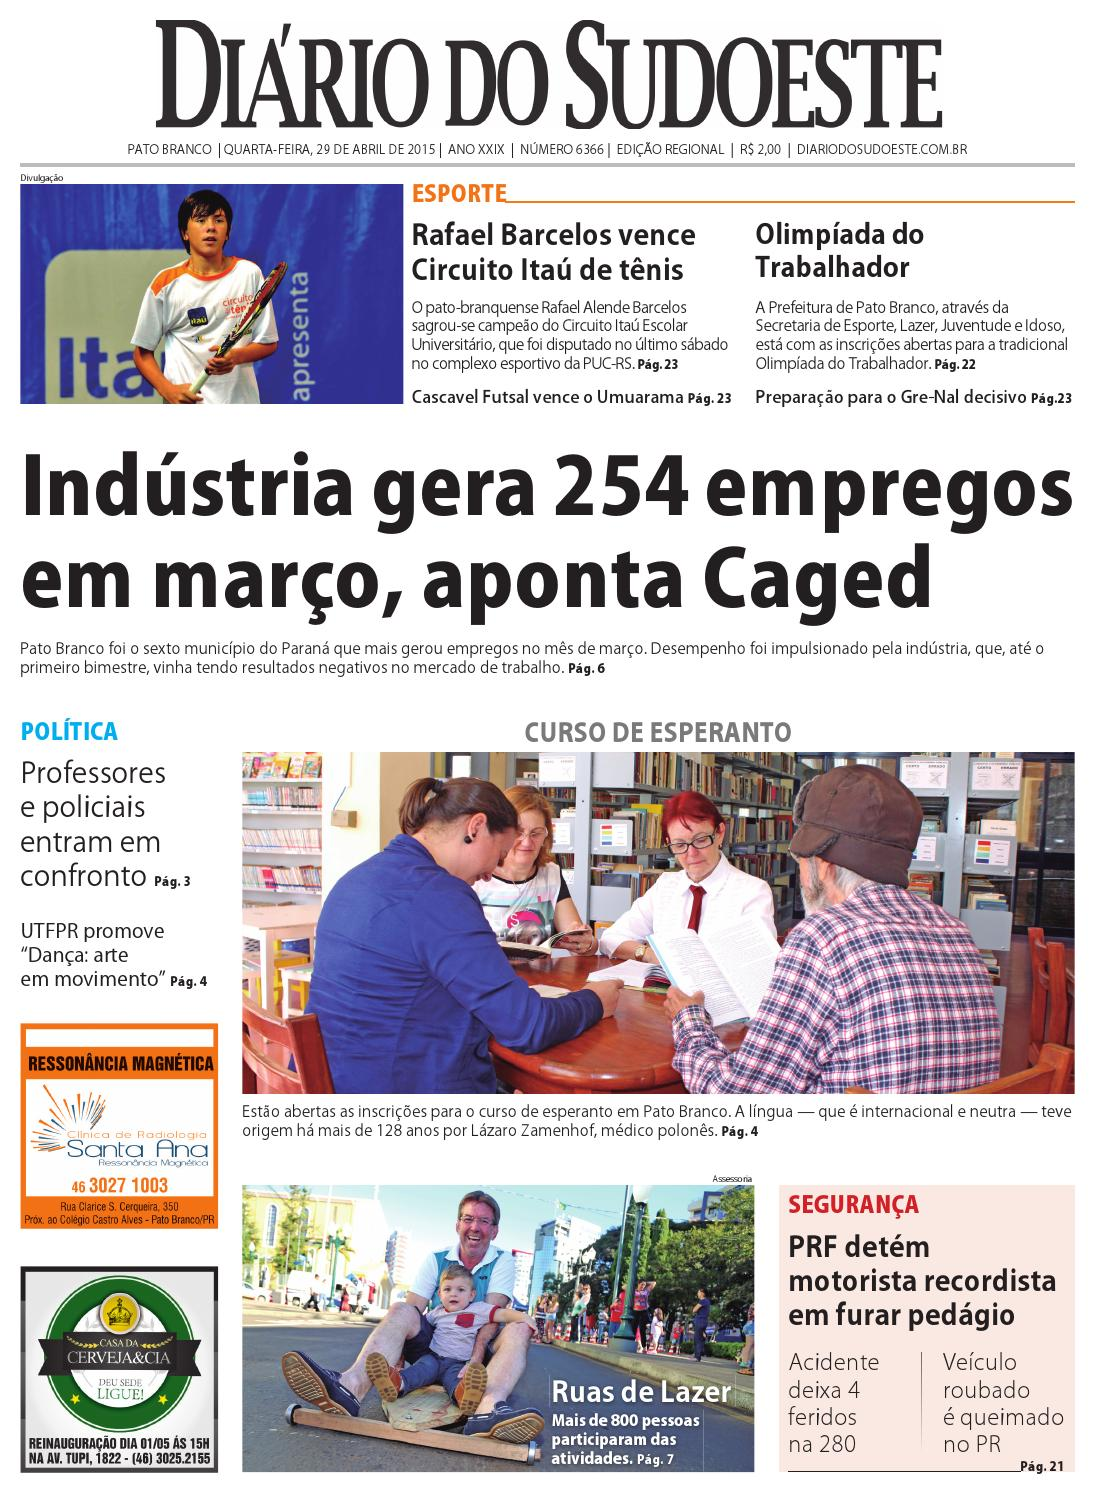 Diario do sudoeste 29 de abril de 2015 ed 6366 indd by Diário do Sudoeste -  issuu 824ef5b6bbea9